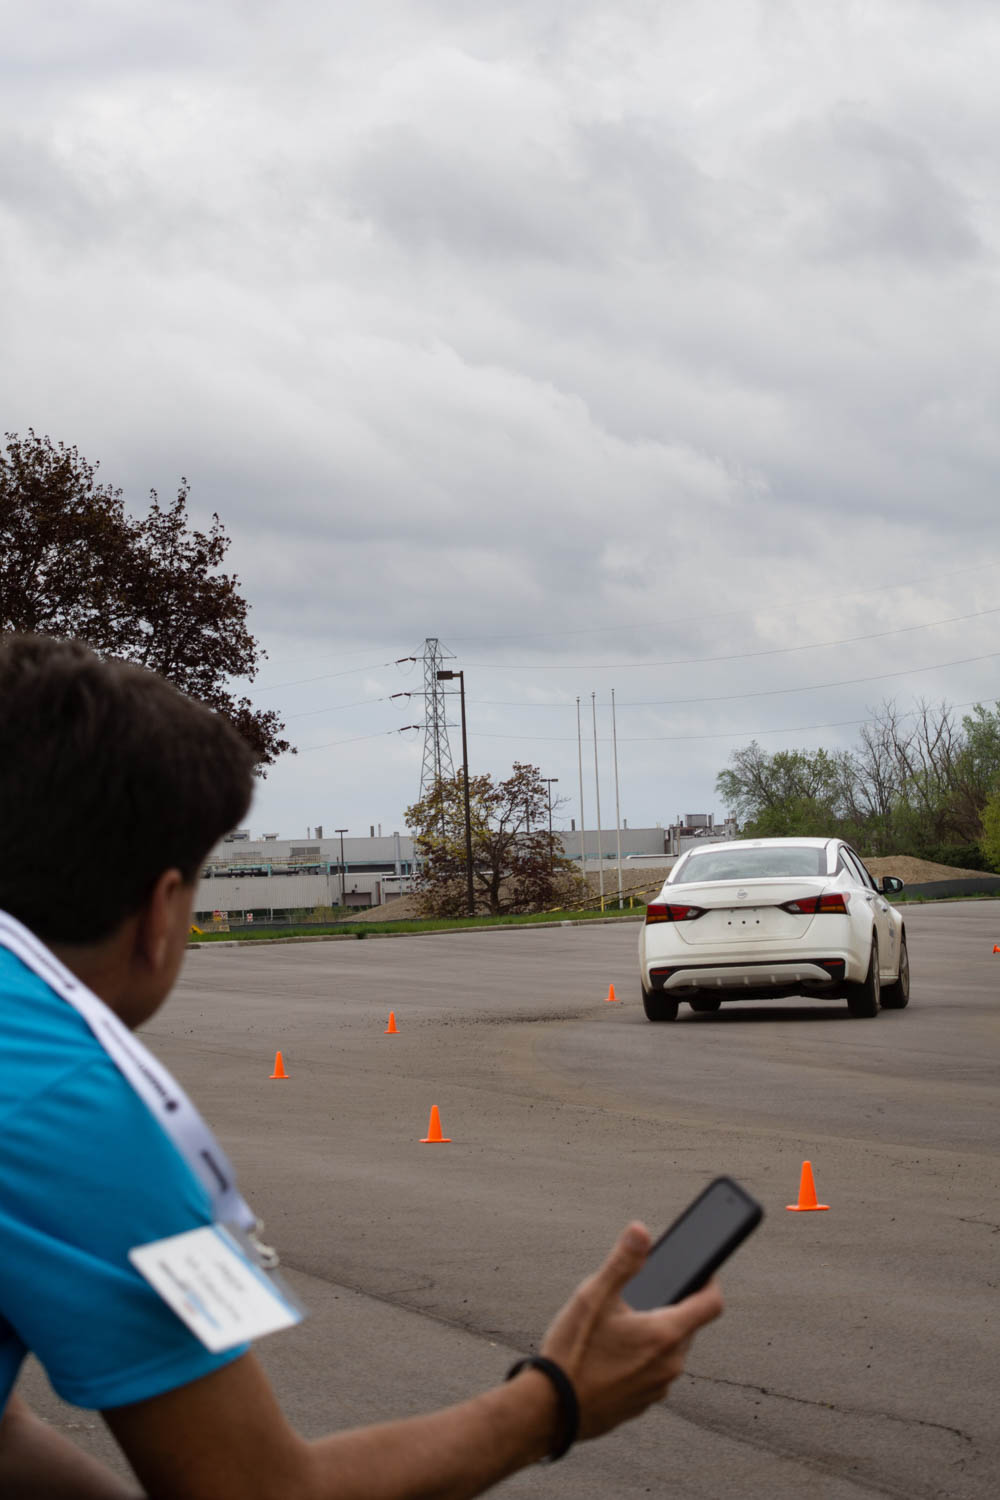 Timing a teammate on the Autocross course